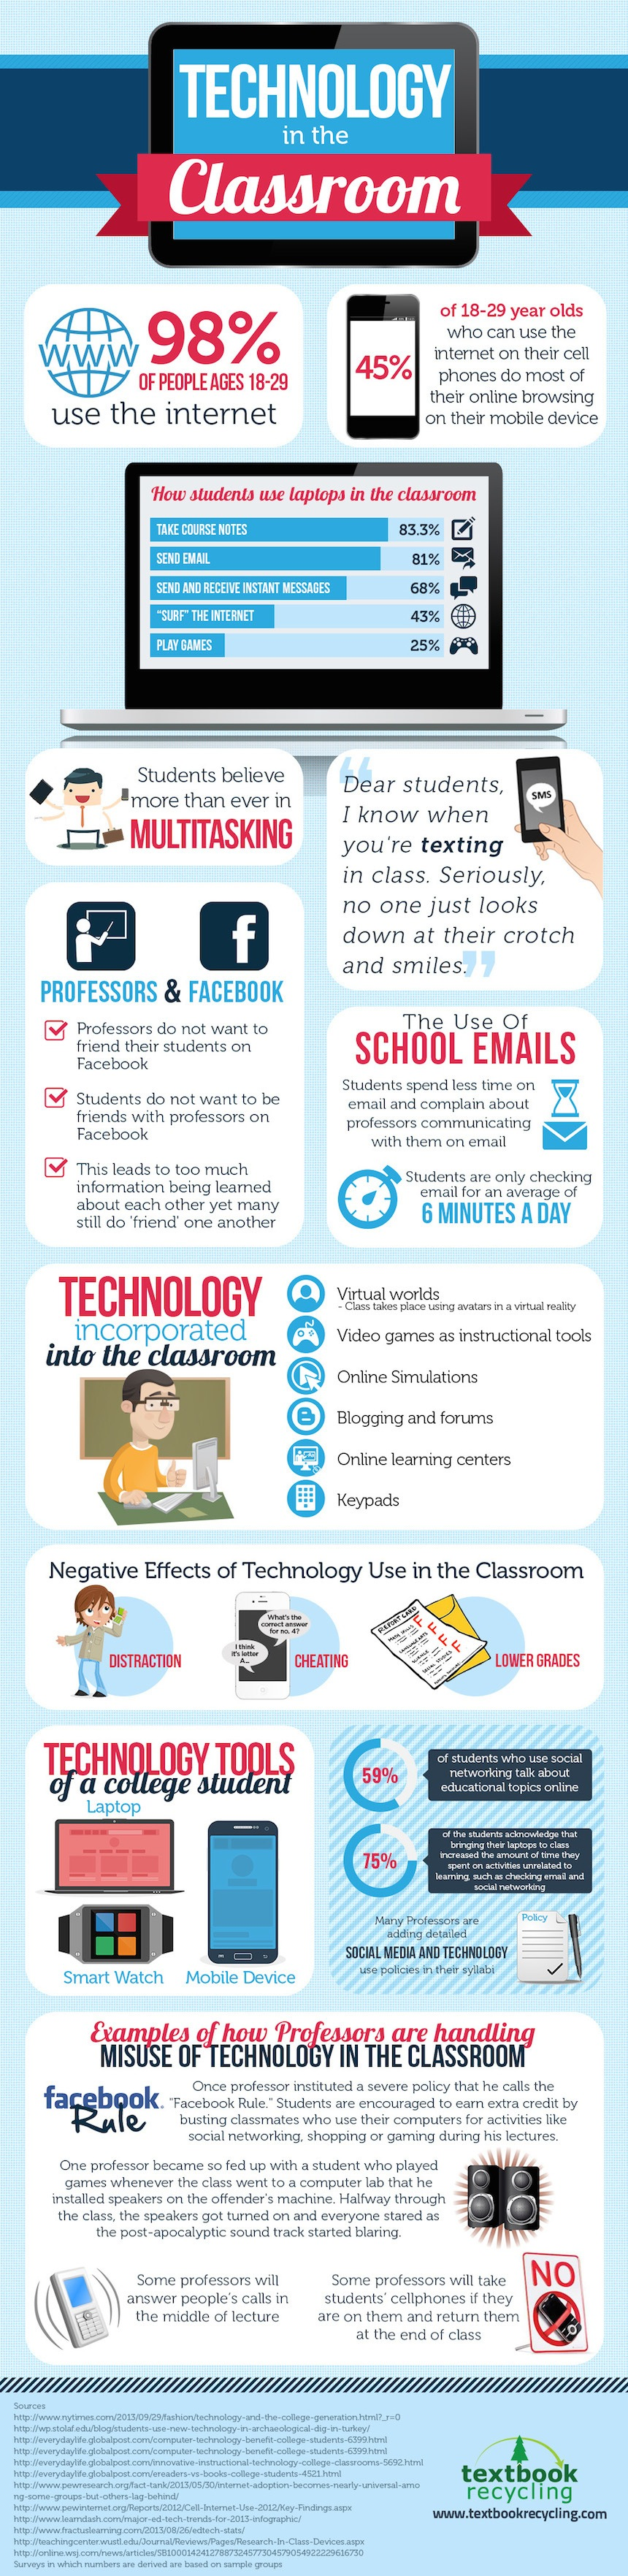 Technology-Use-in-the-College-Classroom-and-Beyond-Infographic